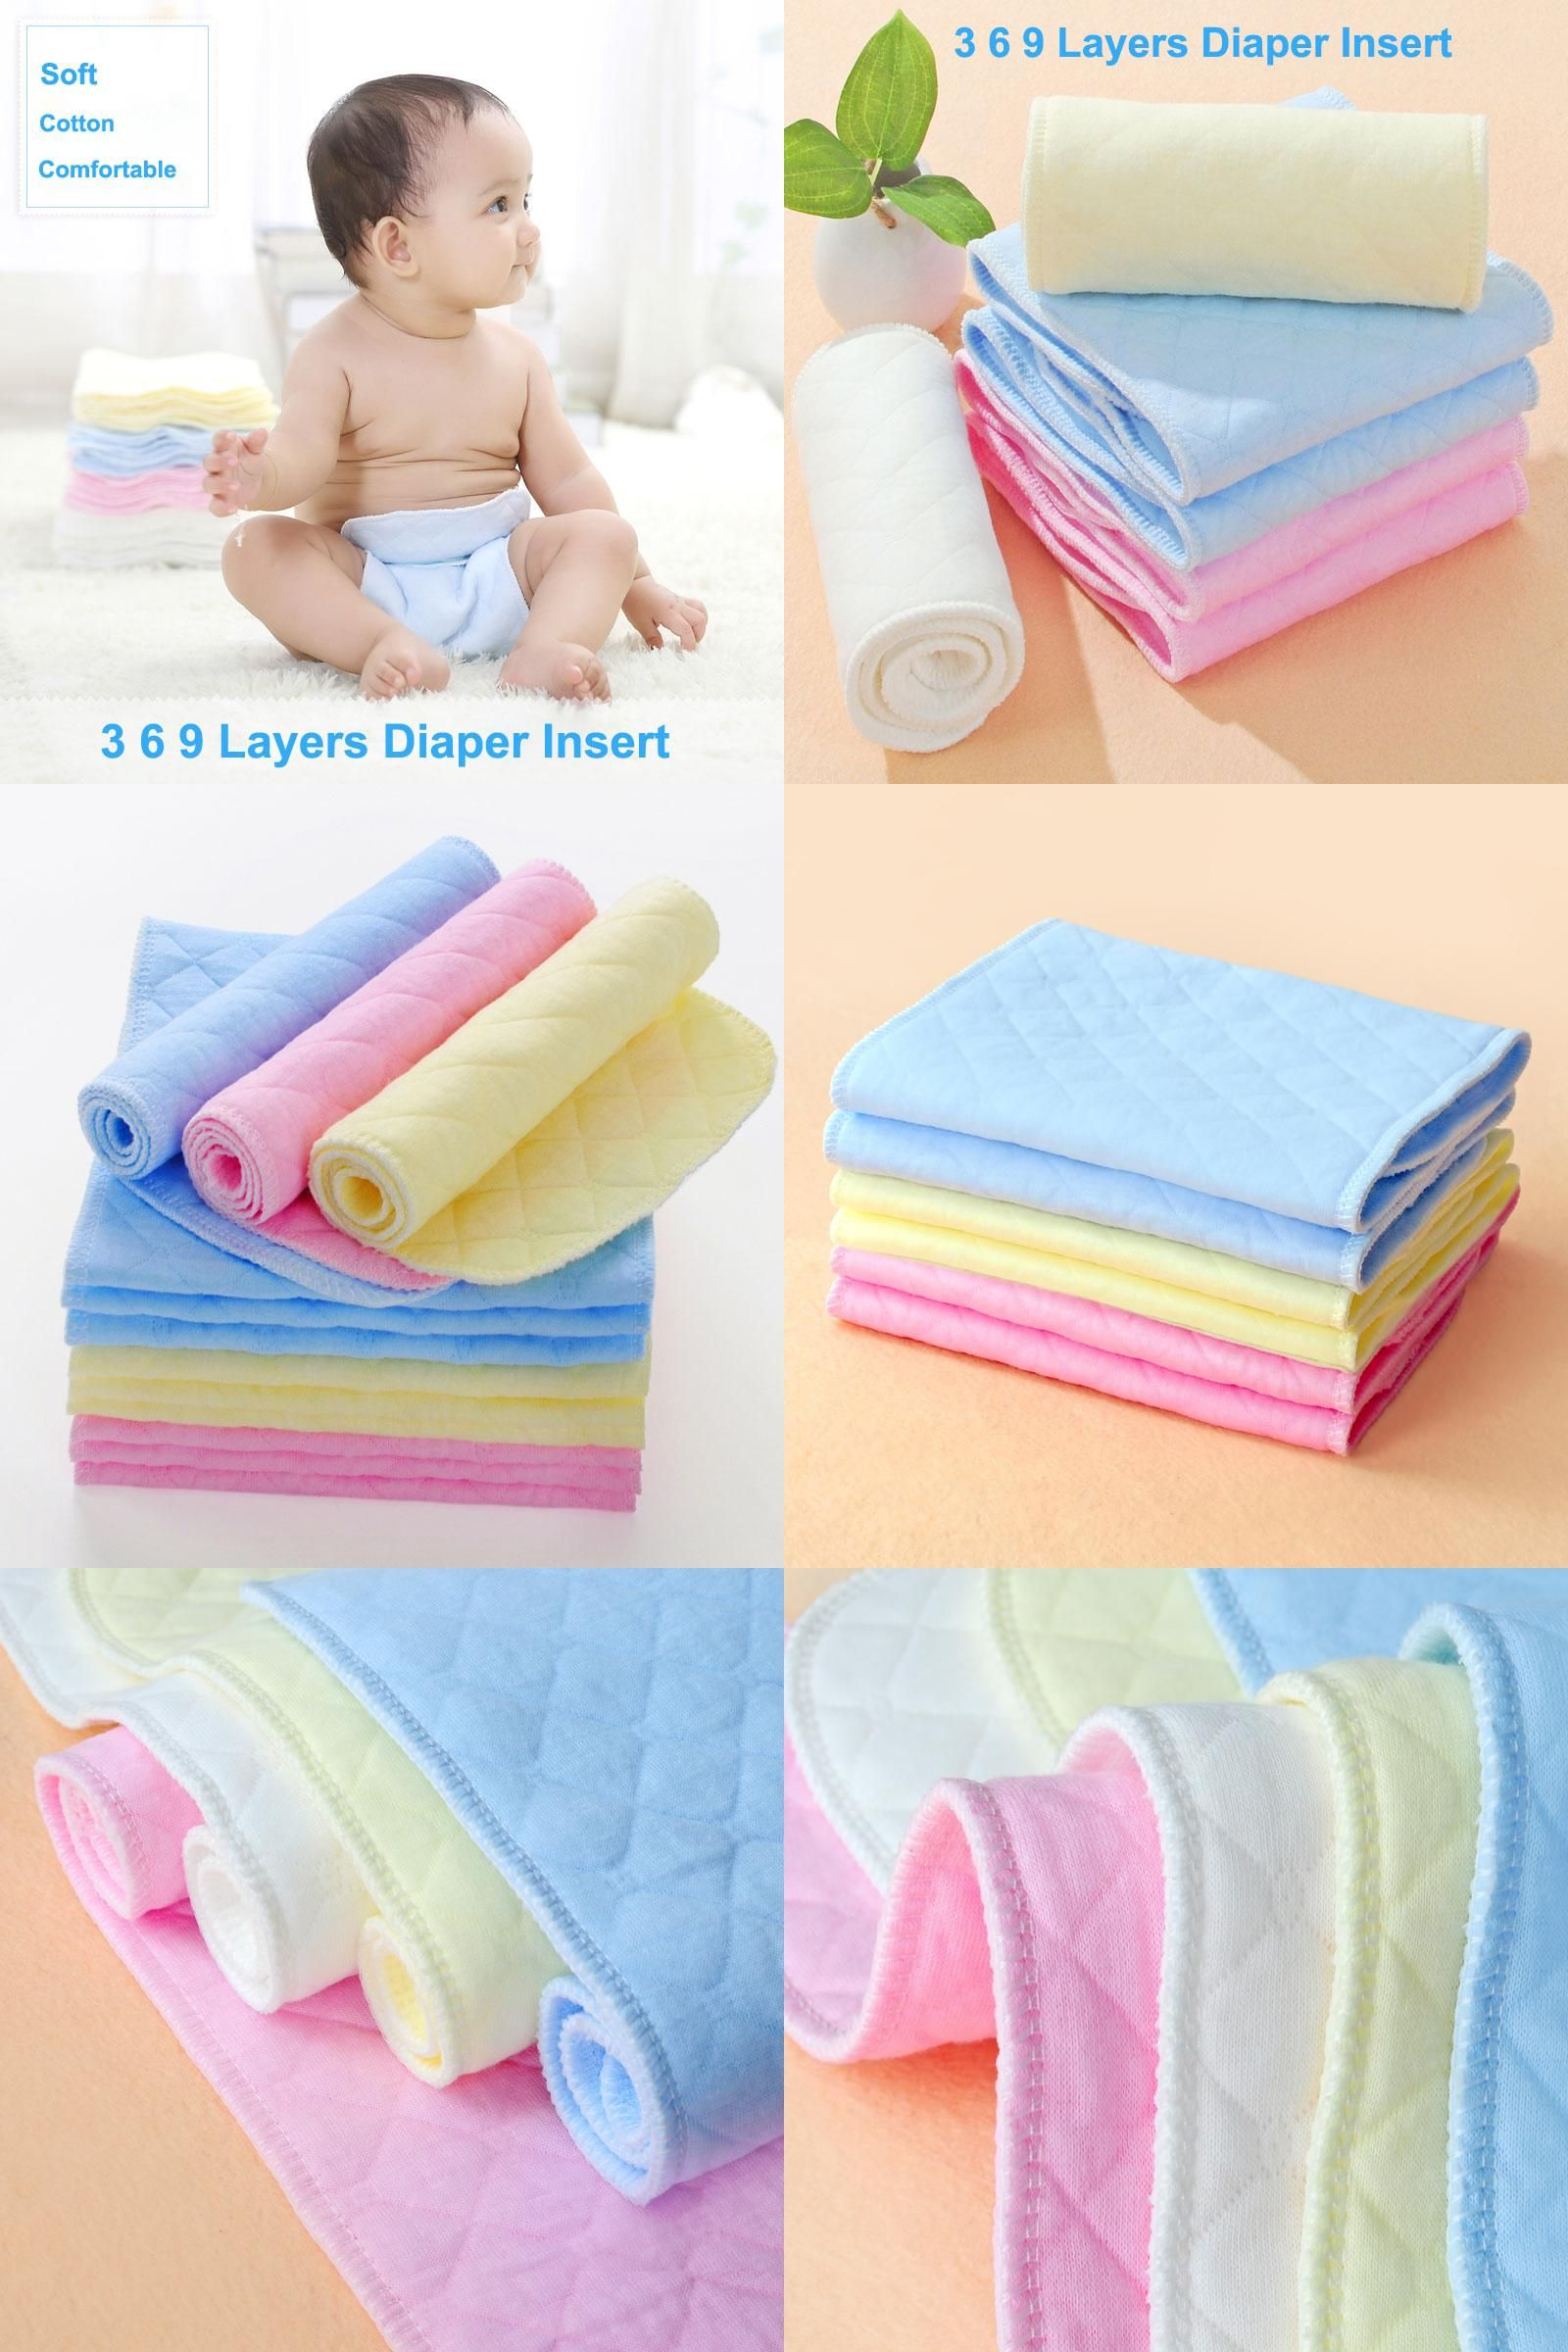 Baby Diaper Pad 5pcs Soft Breathable Baby Infant Toddler High Water Absorbing Washable Bamboo Nappy Liners Insert